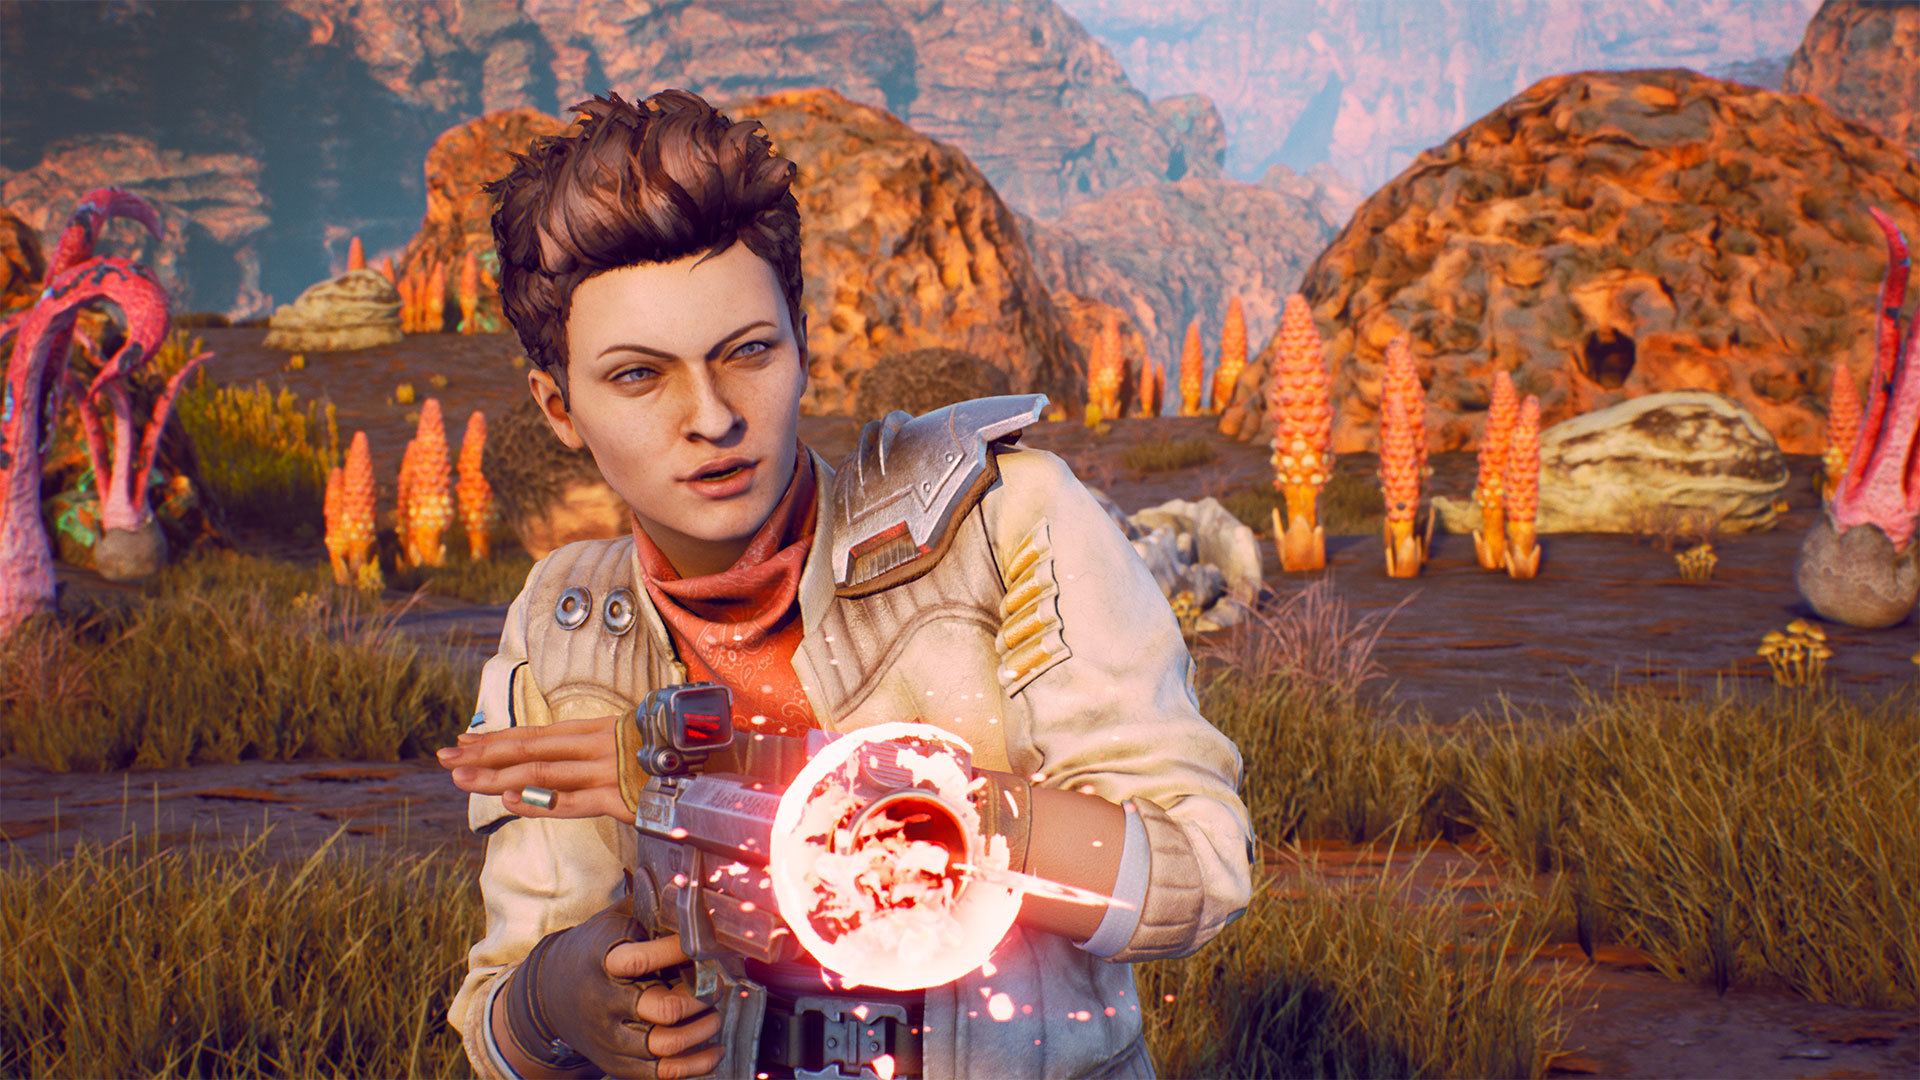 The Outer Worlds Review Embargo Date Has Been Revealed